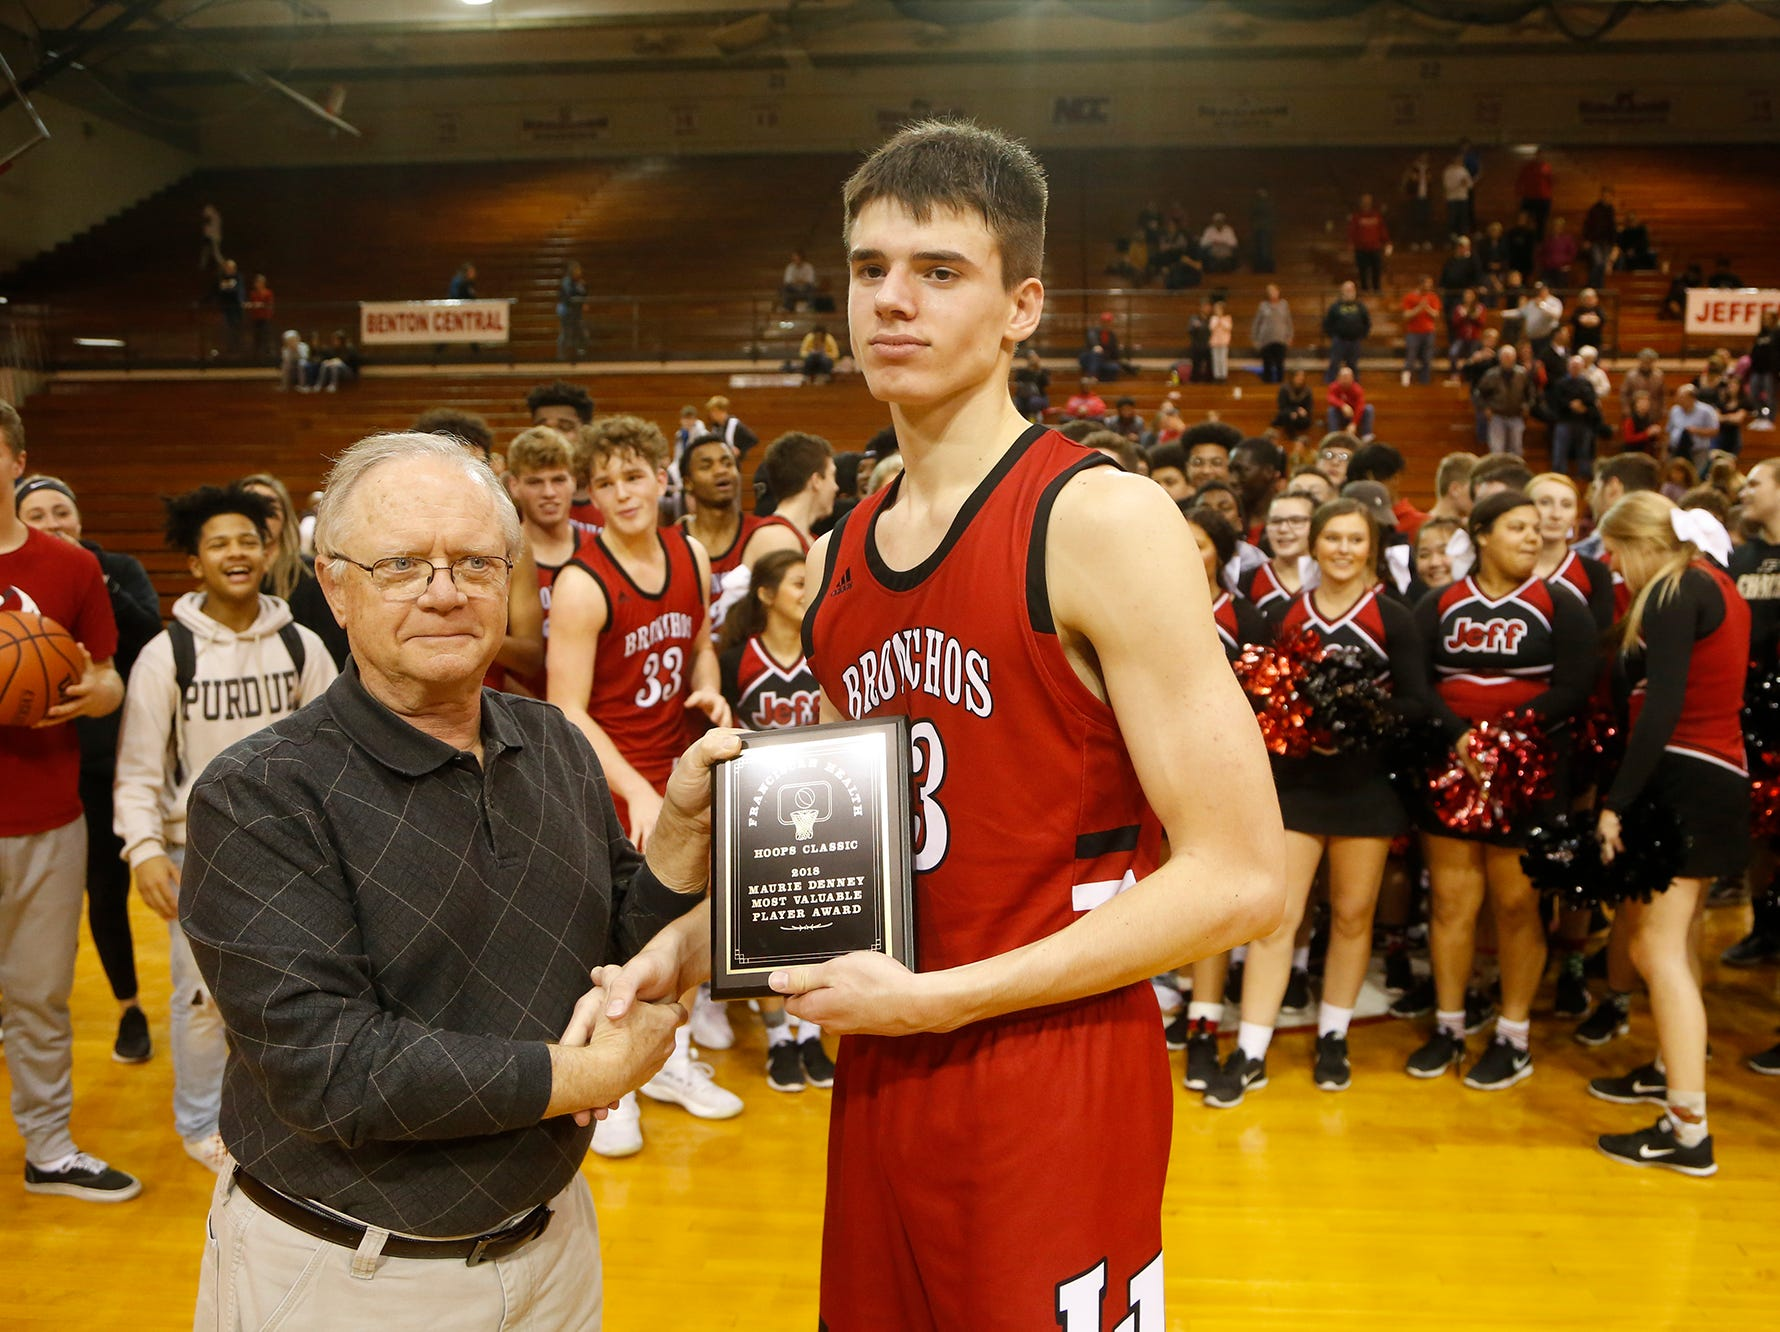 Brooks Barnhizer of Lafayette Jeff is preseneted the Maurie Denney Most Valuable Player Award following the championship of the Franciscan Health Hoops Classic Saturday, December 1, 2018, at Lafayette Jeff. Lafayette Jeff defeated Central Catholic 76-73 for the title.